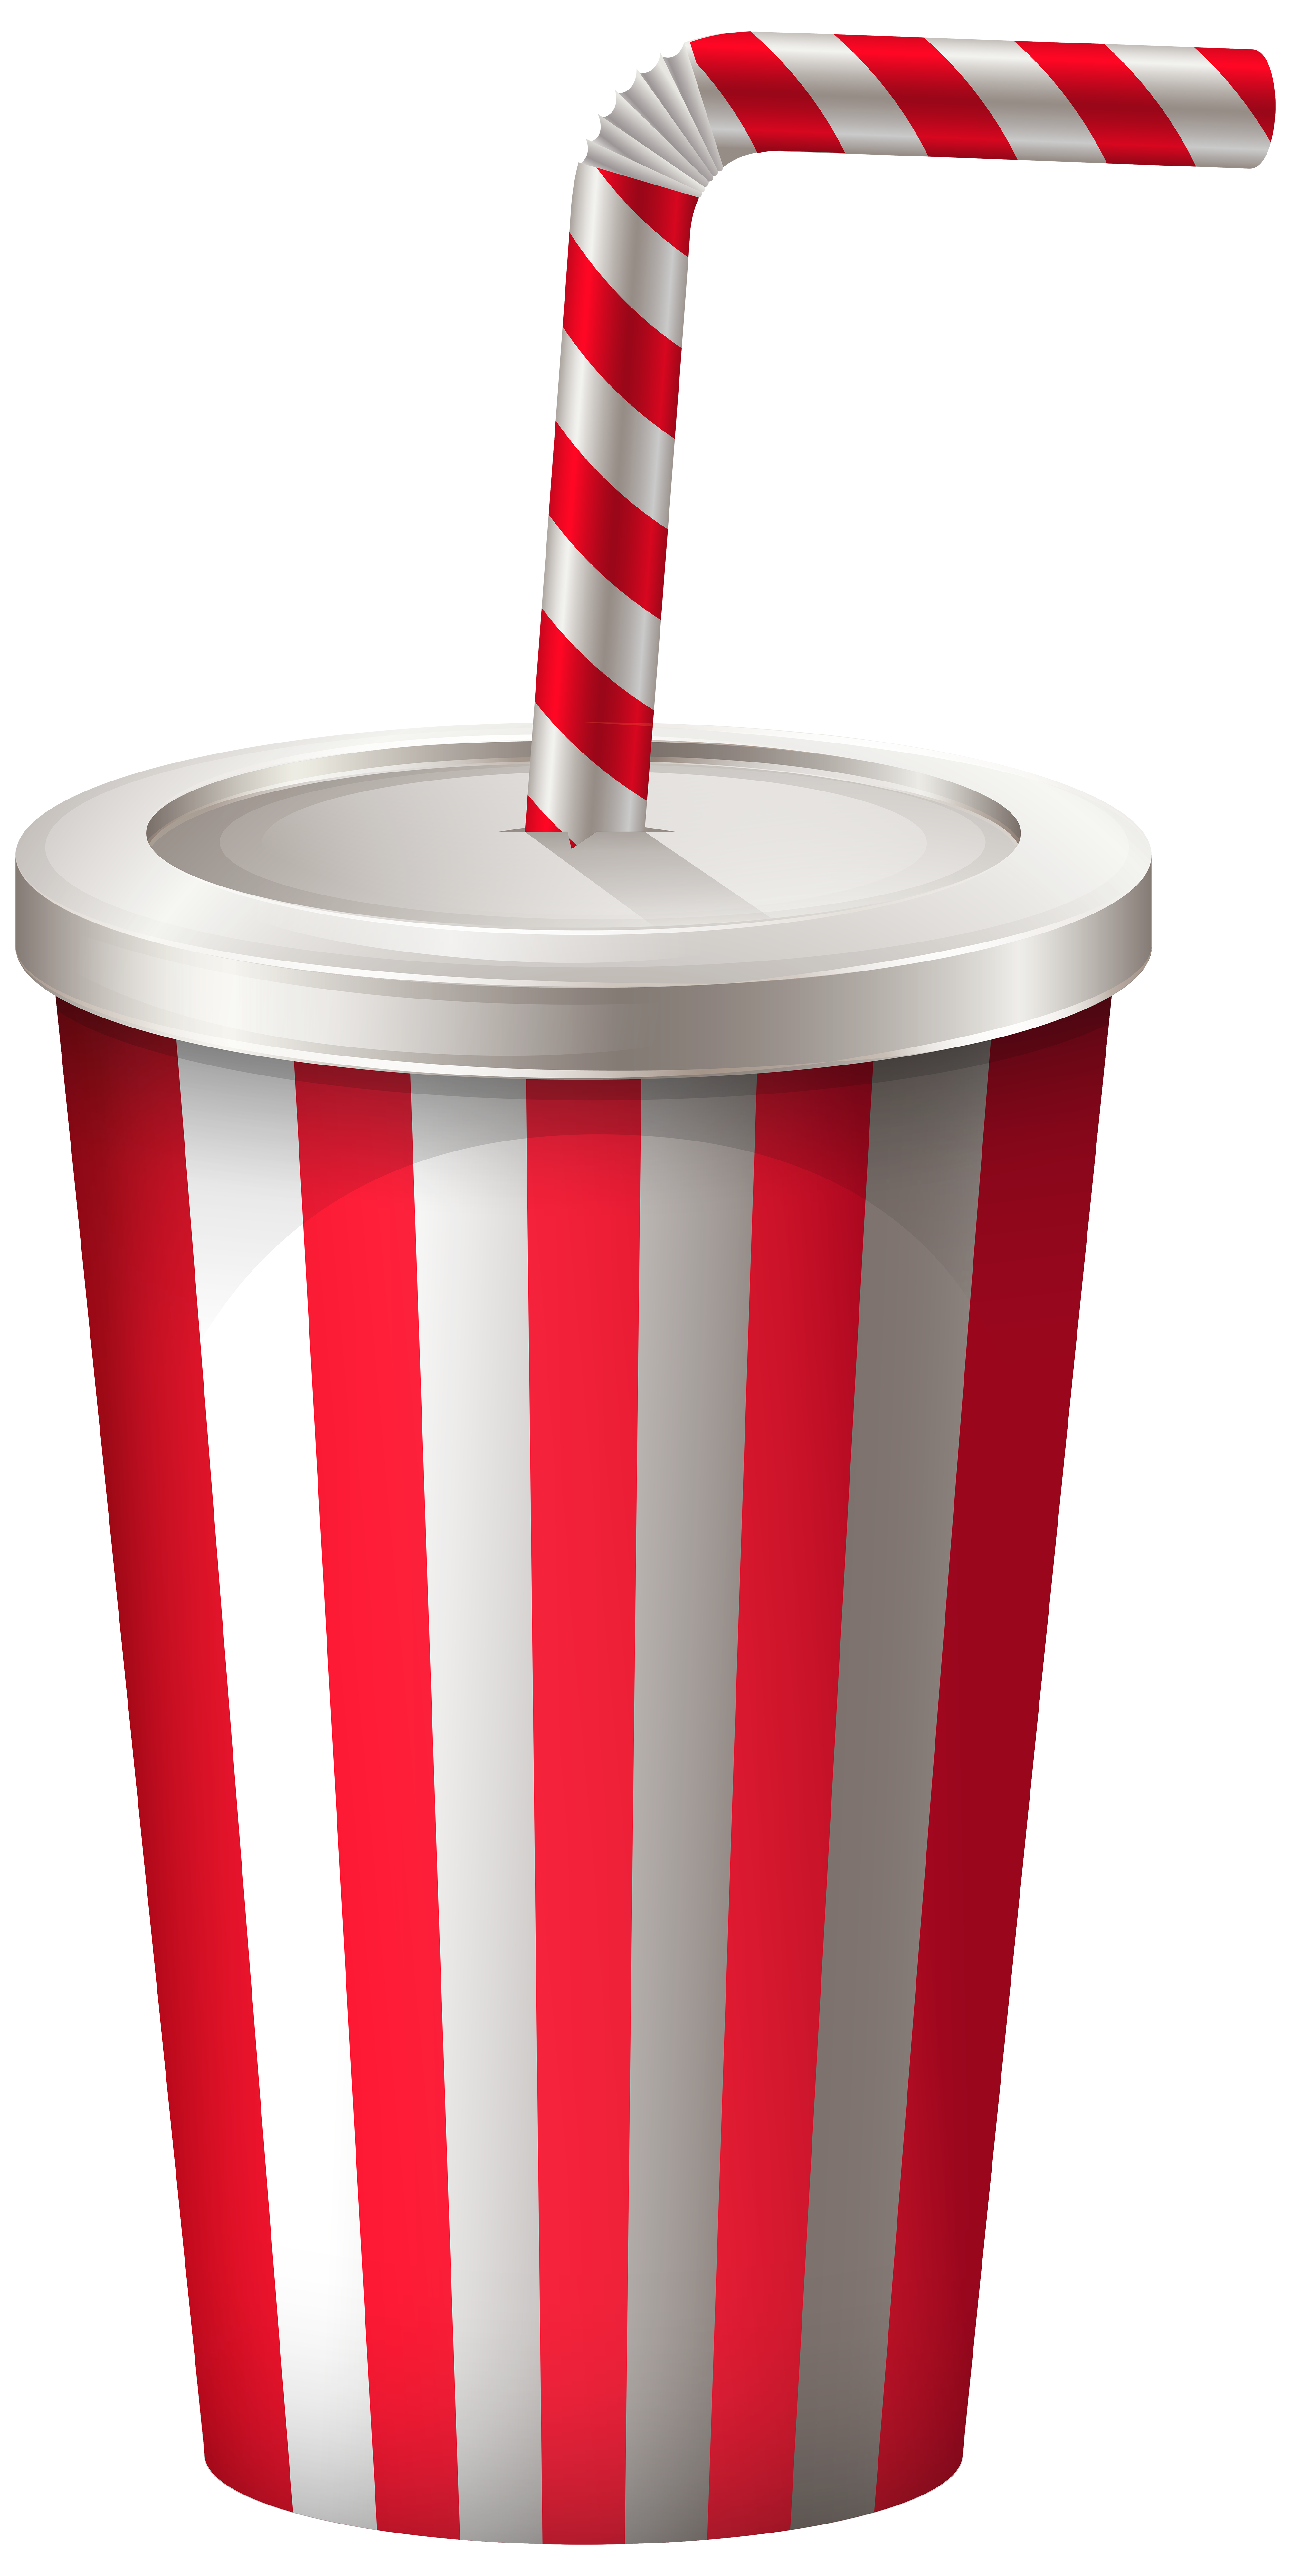 Drinking cup clipart